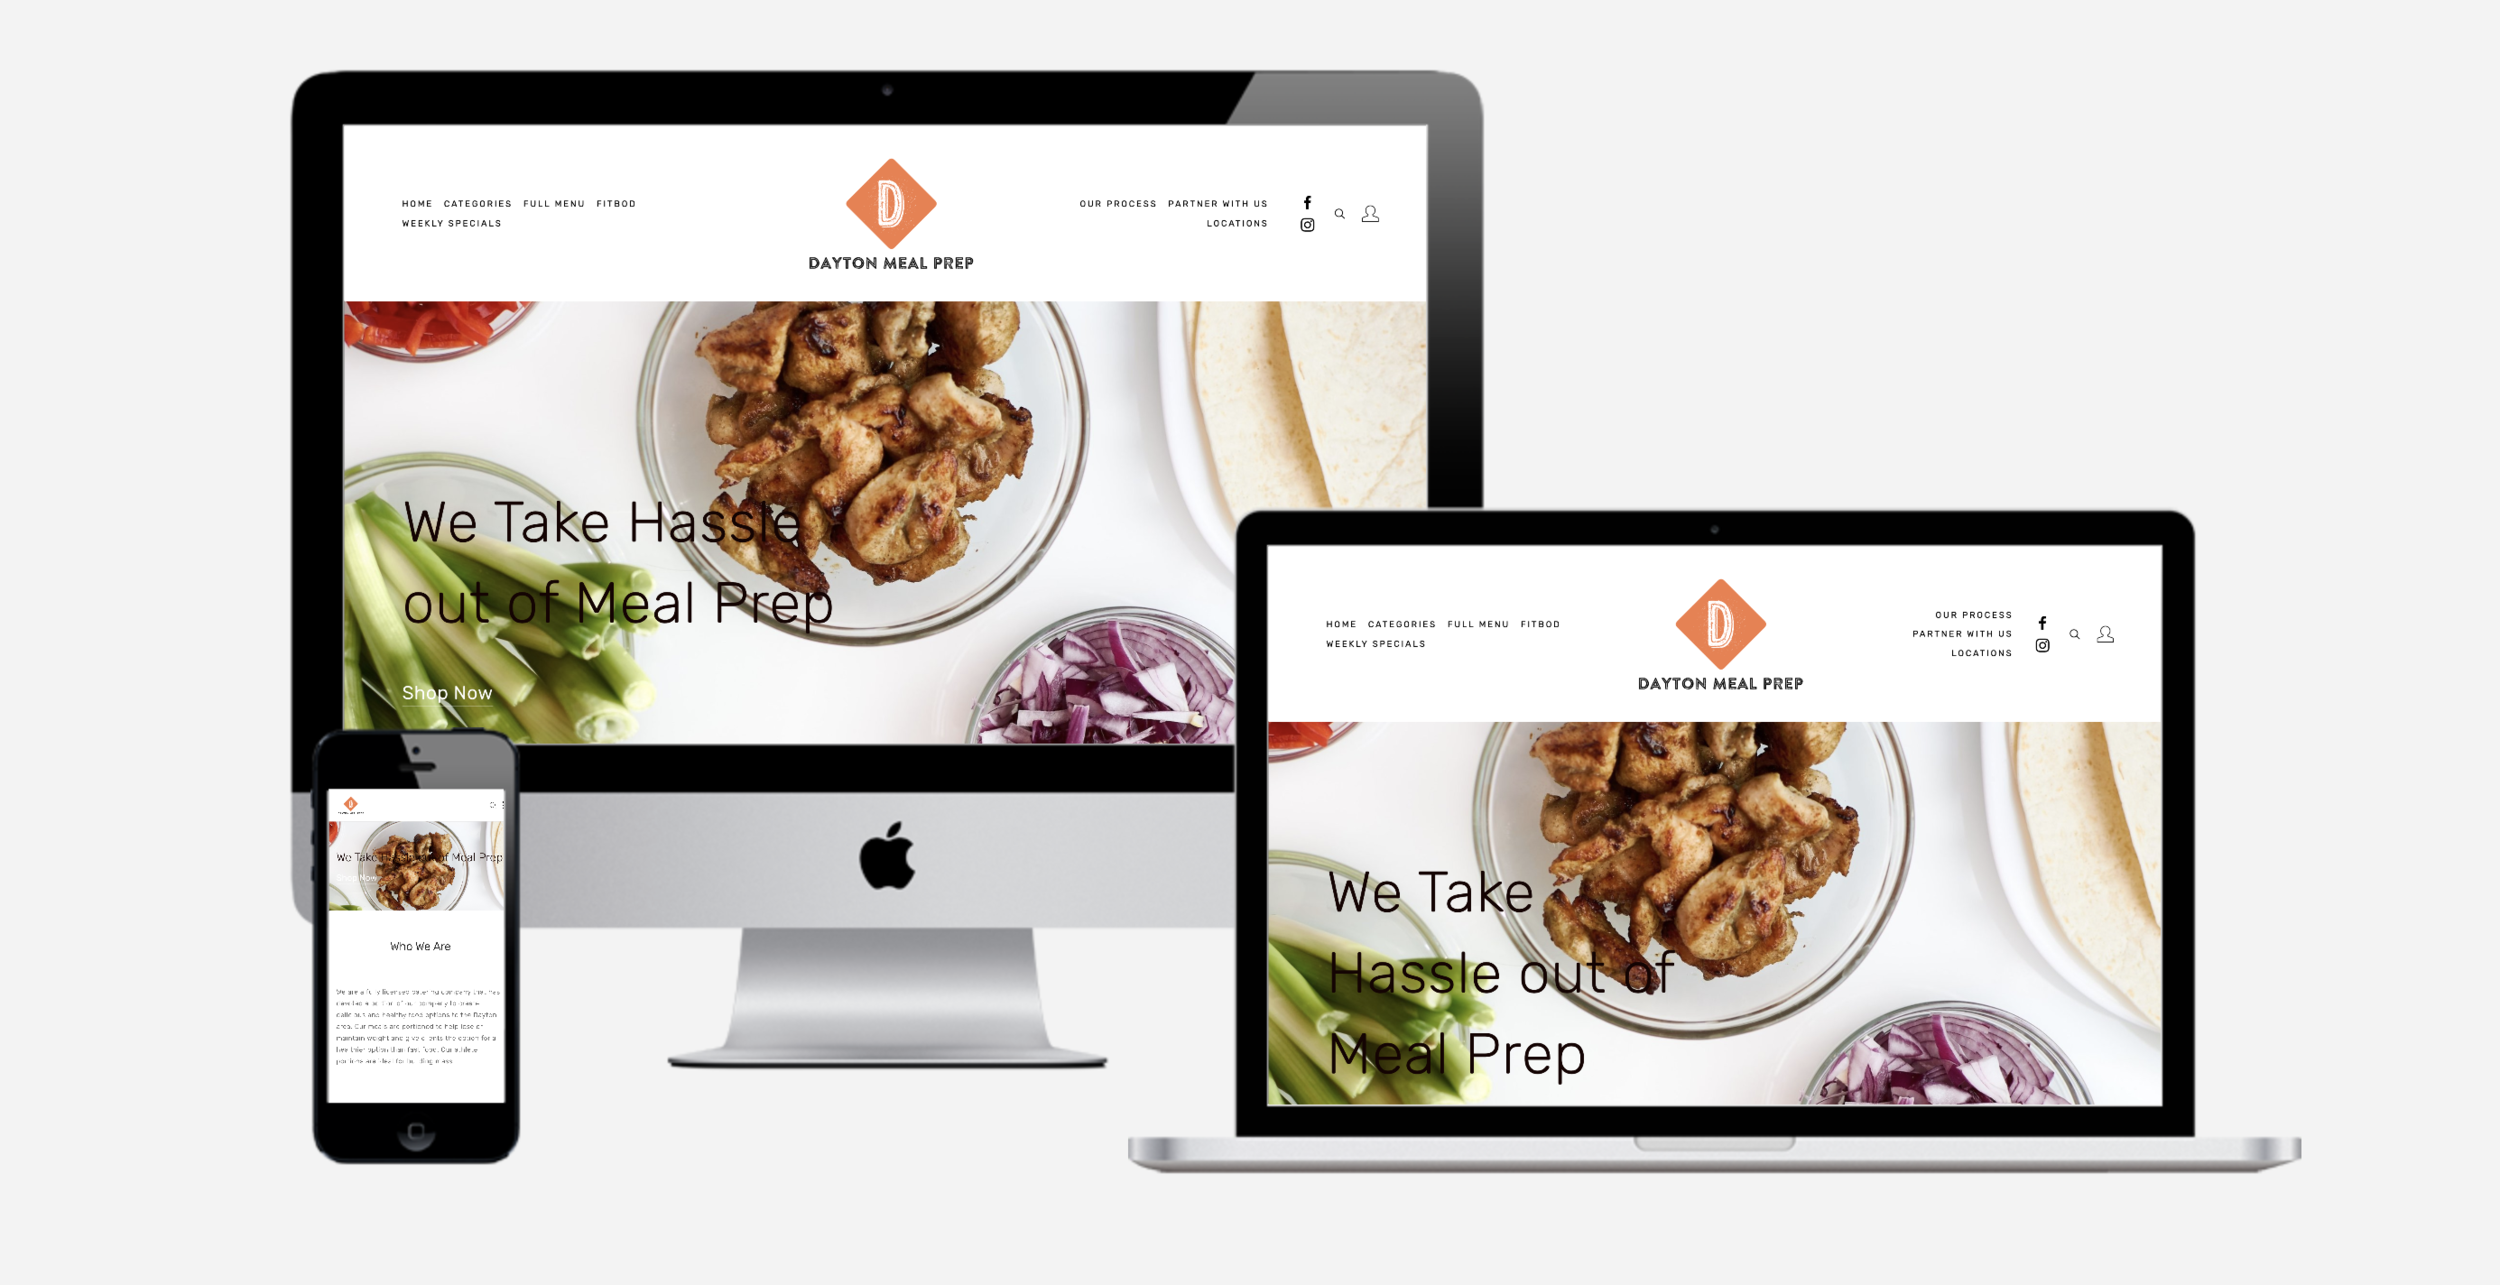 Dayton Meal Prep - A meal prep service that provides their customers with healthy convenient options to make meal prepping easy and simple !